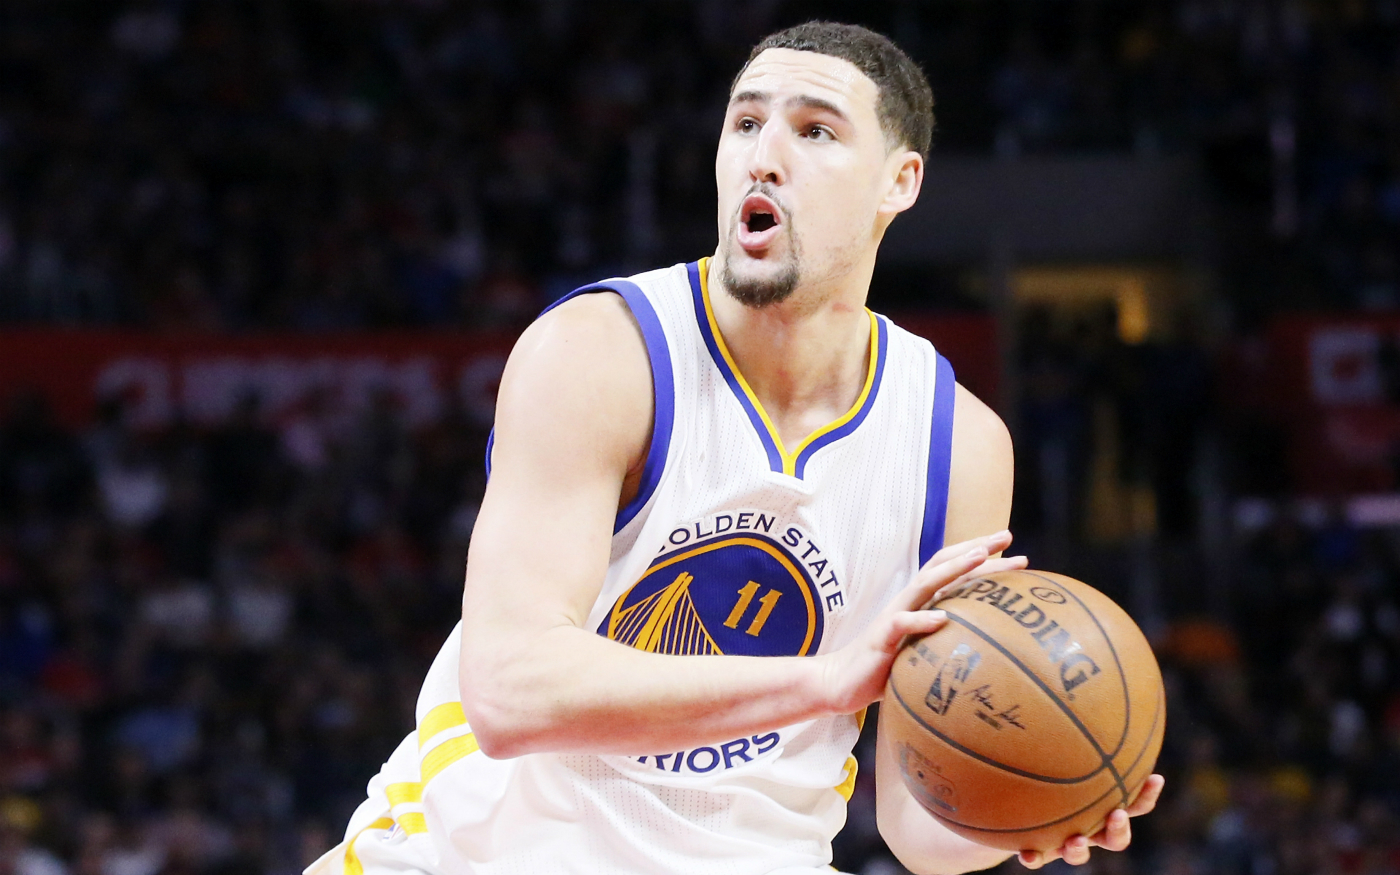 Fou : Klay Thompson claque 60 points en 29 minutes contre les Pacers